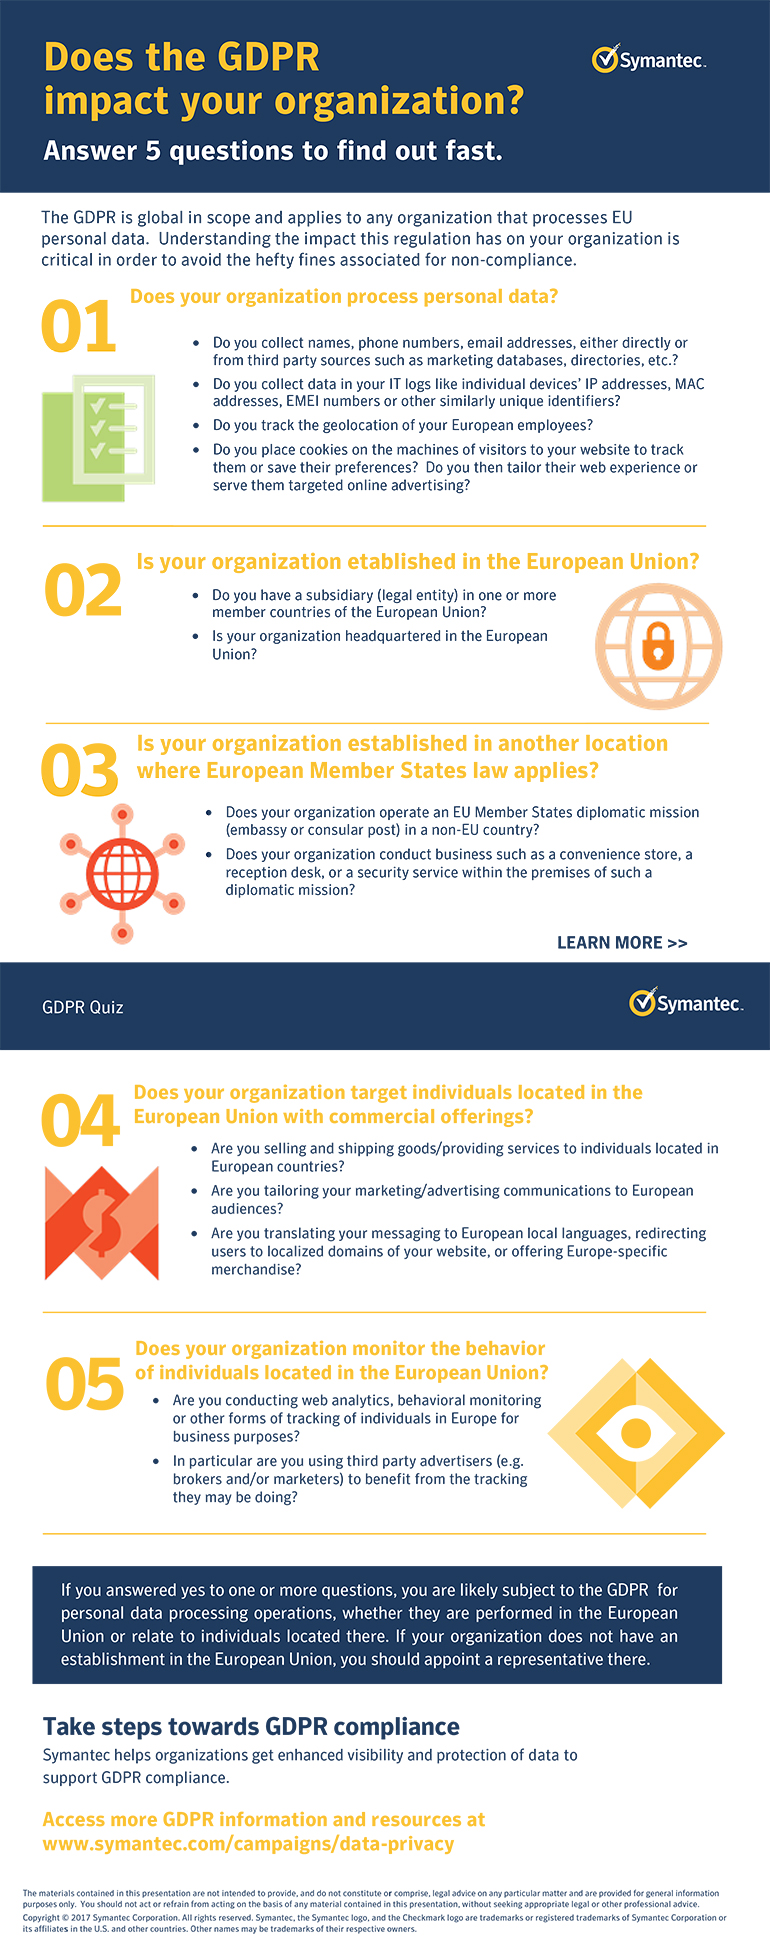 Does the GDPR impact your organization infographic as described by the text below